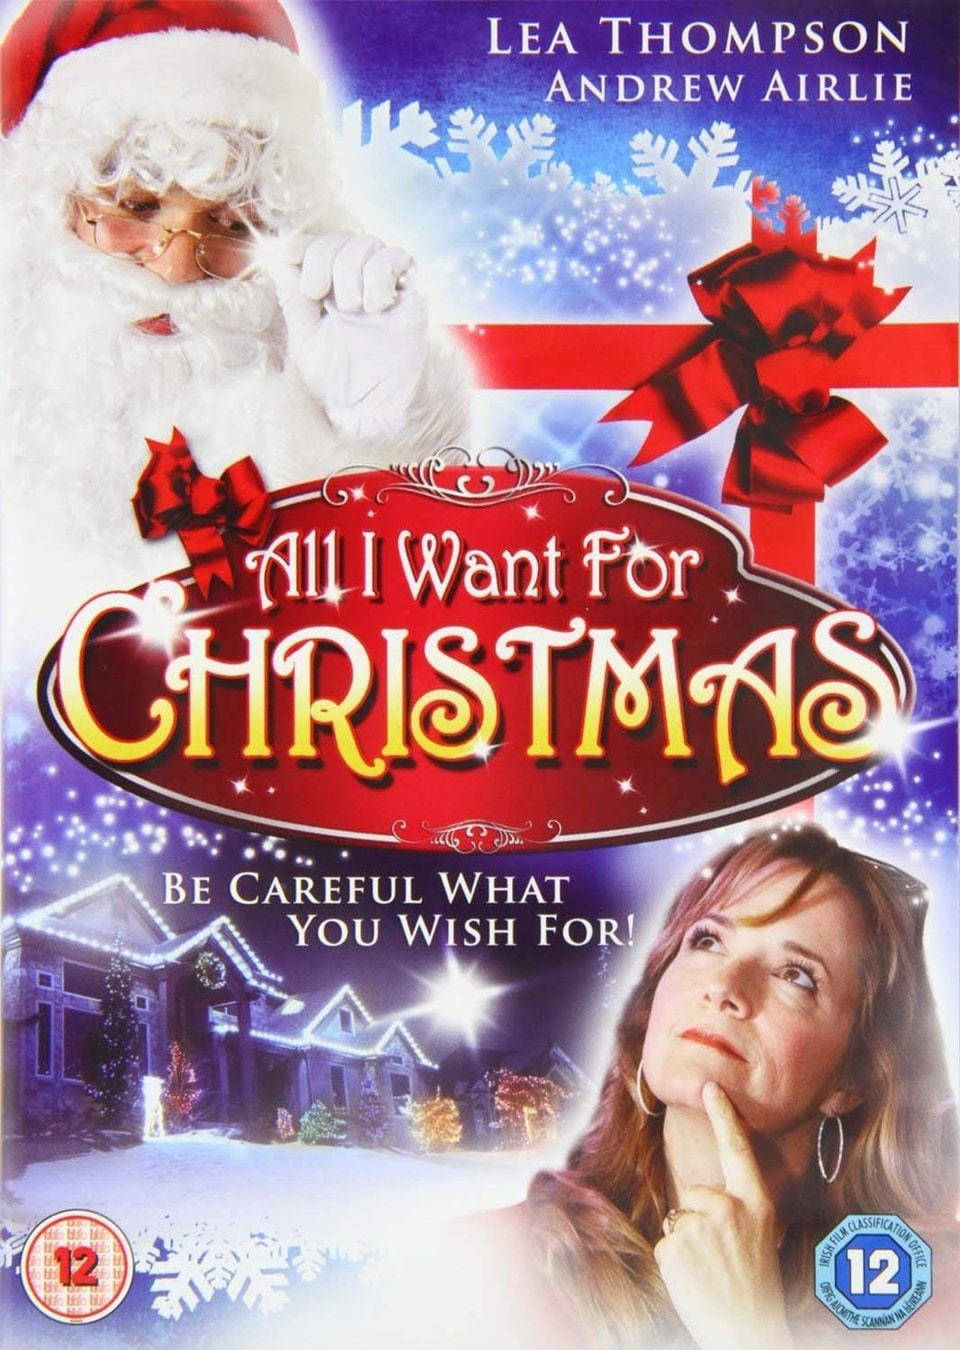 All I Want for Christmas - 1